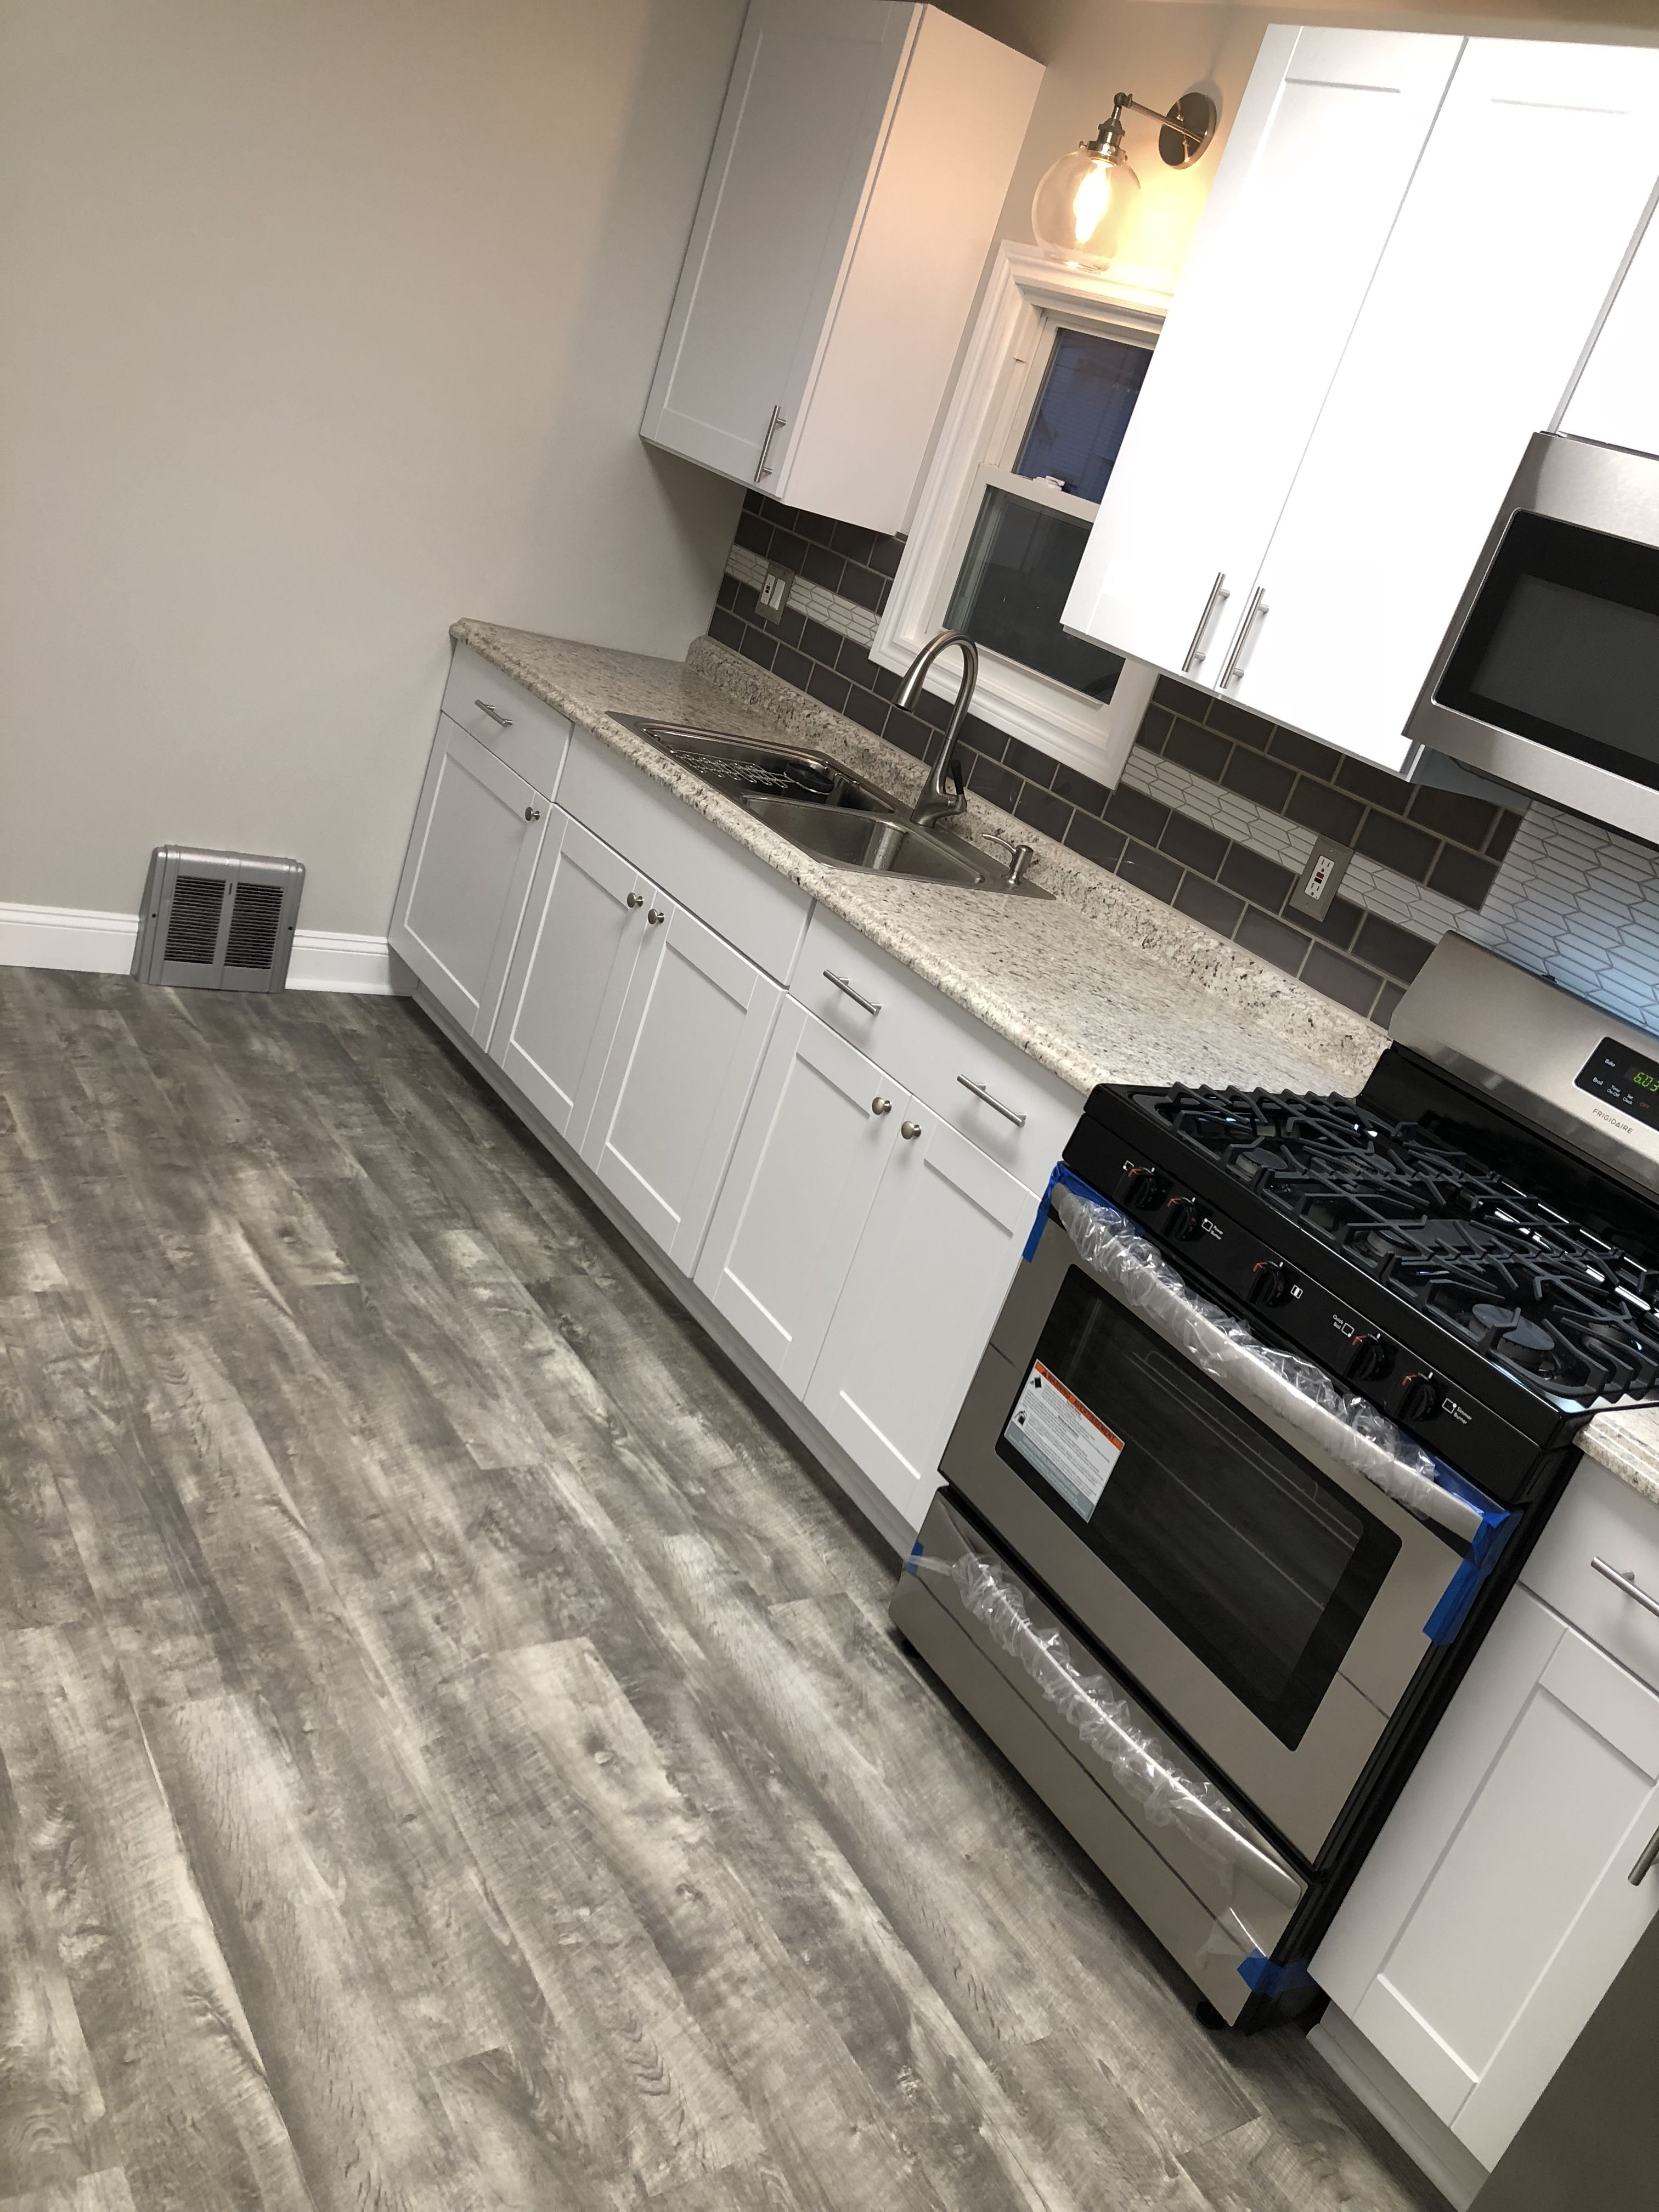 Home decorators Stony oak grey vinyl plank flooring  White shaker     Home decorators Stony oak grey vinyl plank flooring  White shaker kitchen  cabinets